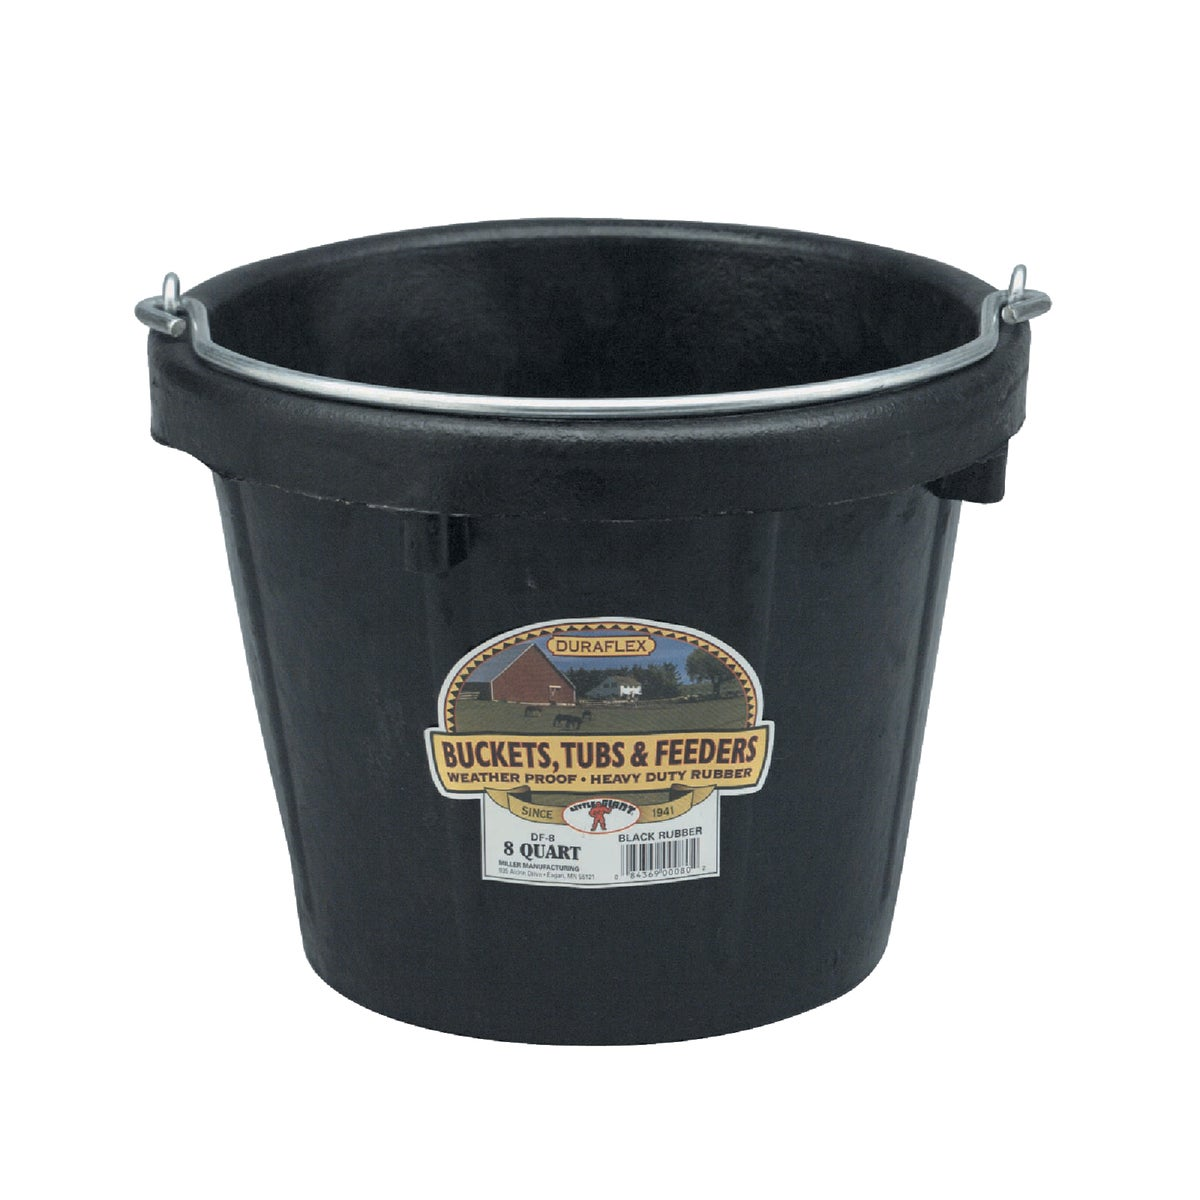 8QT LIGHTDTY RUBBER PAIL - DF8 by Miller Manufacturing